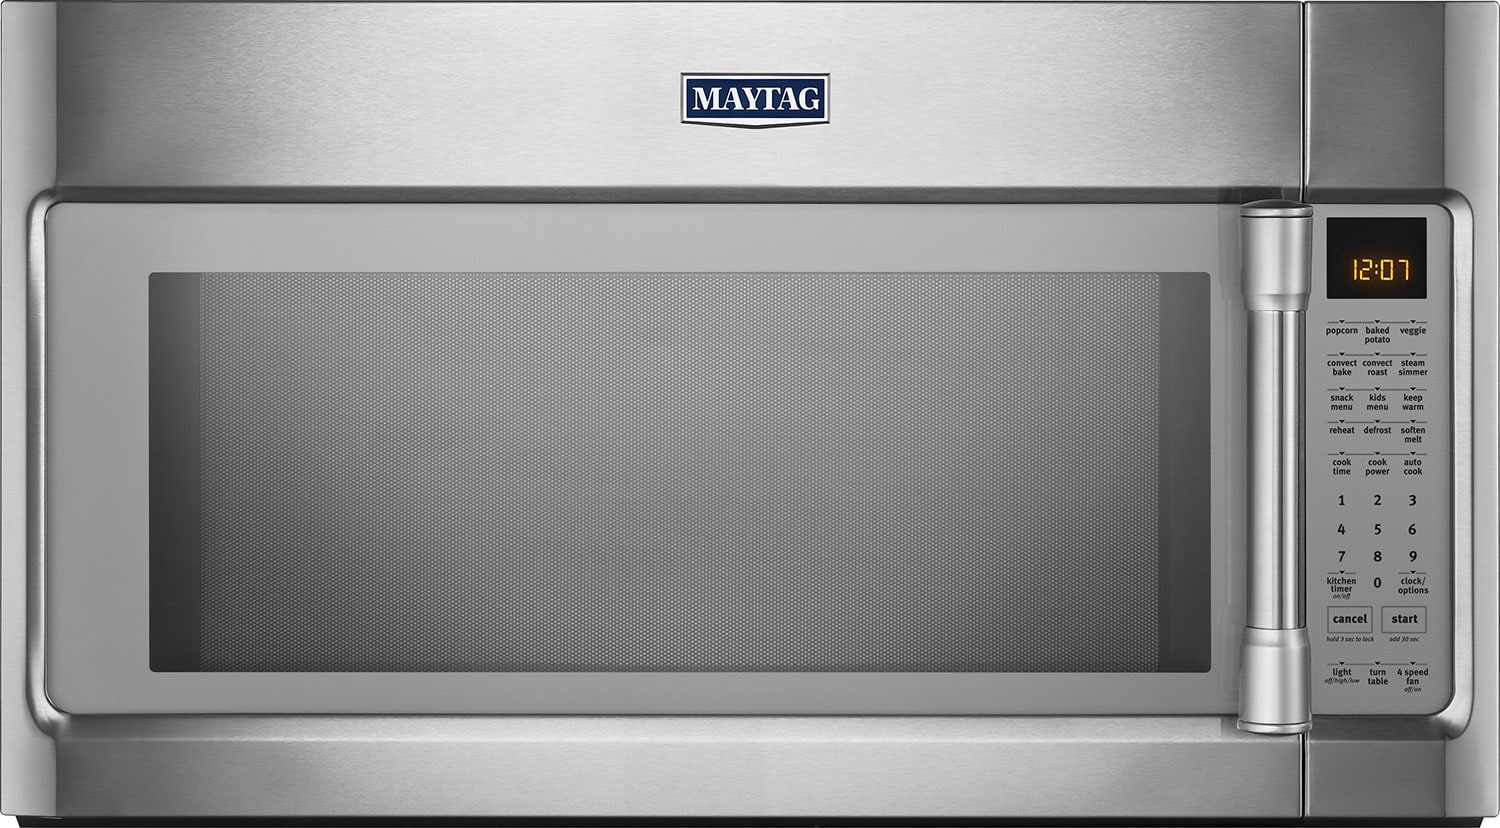 Maytag® 1.9 Cu. Ft. Over-the-Range Microwave – Stainless Steel